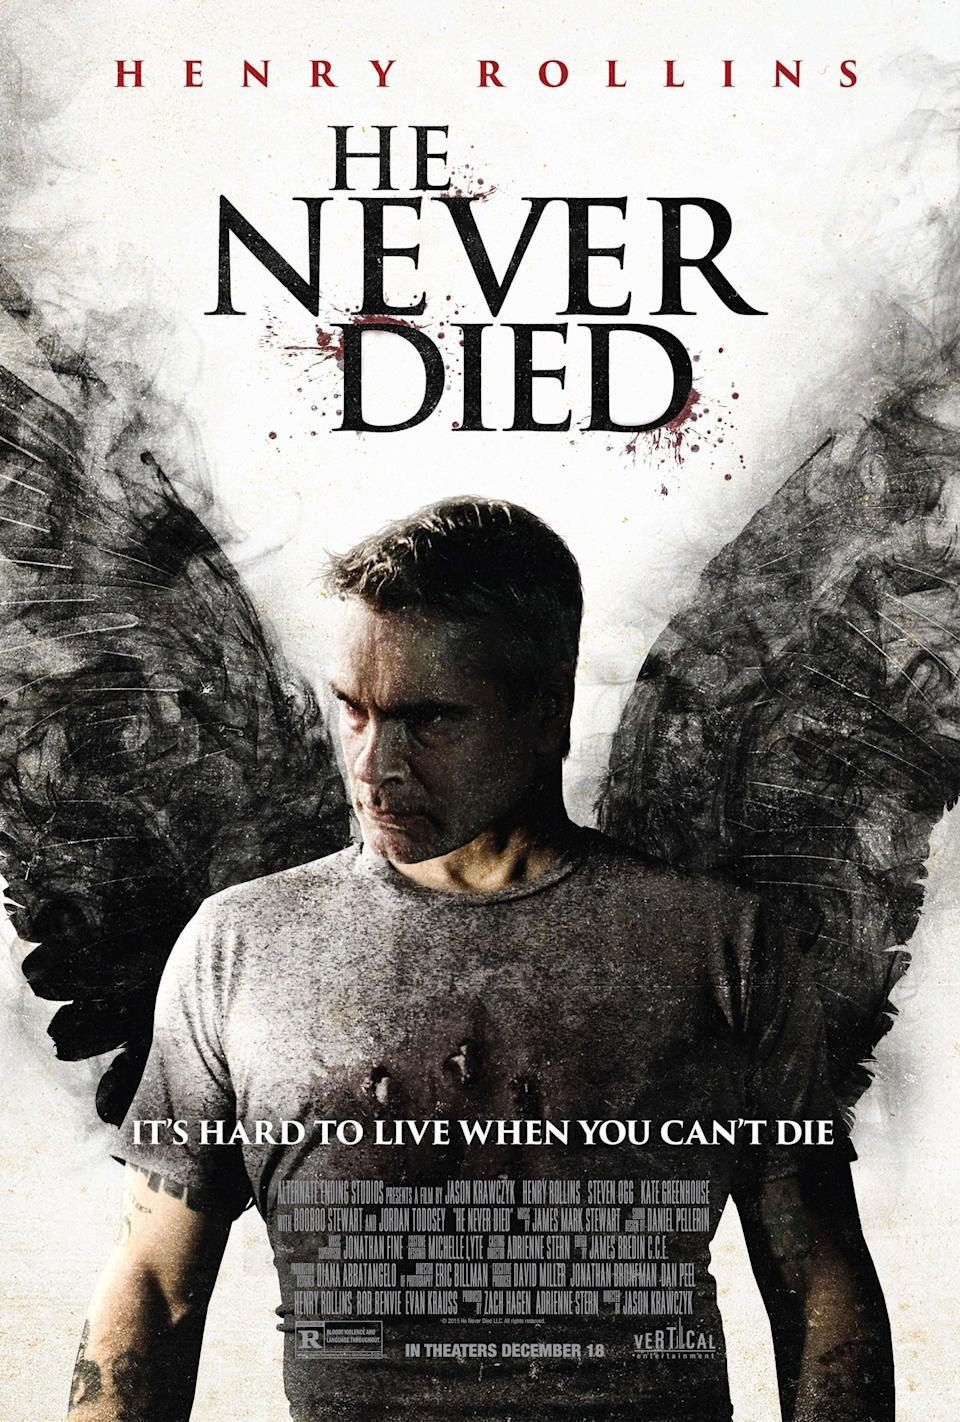 "<h1 class=""title"">HE NEVER DIED, US poster art, Henry Rollins, 2015. © Vertical Entertainment / courtesy Everett</h1><cite class=""credit"">Courtesy Everett Collection</cite>"